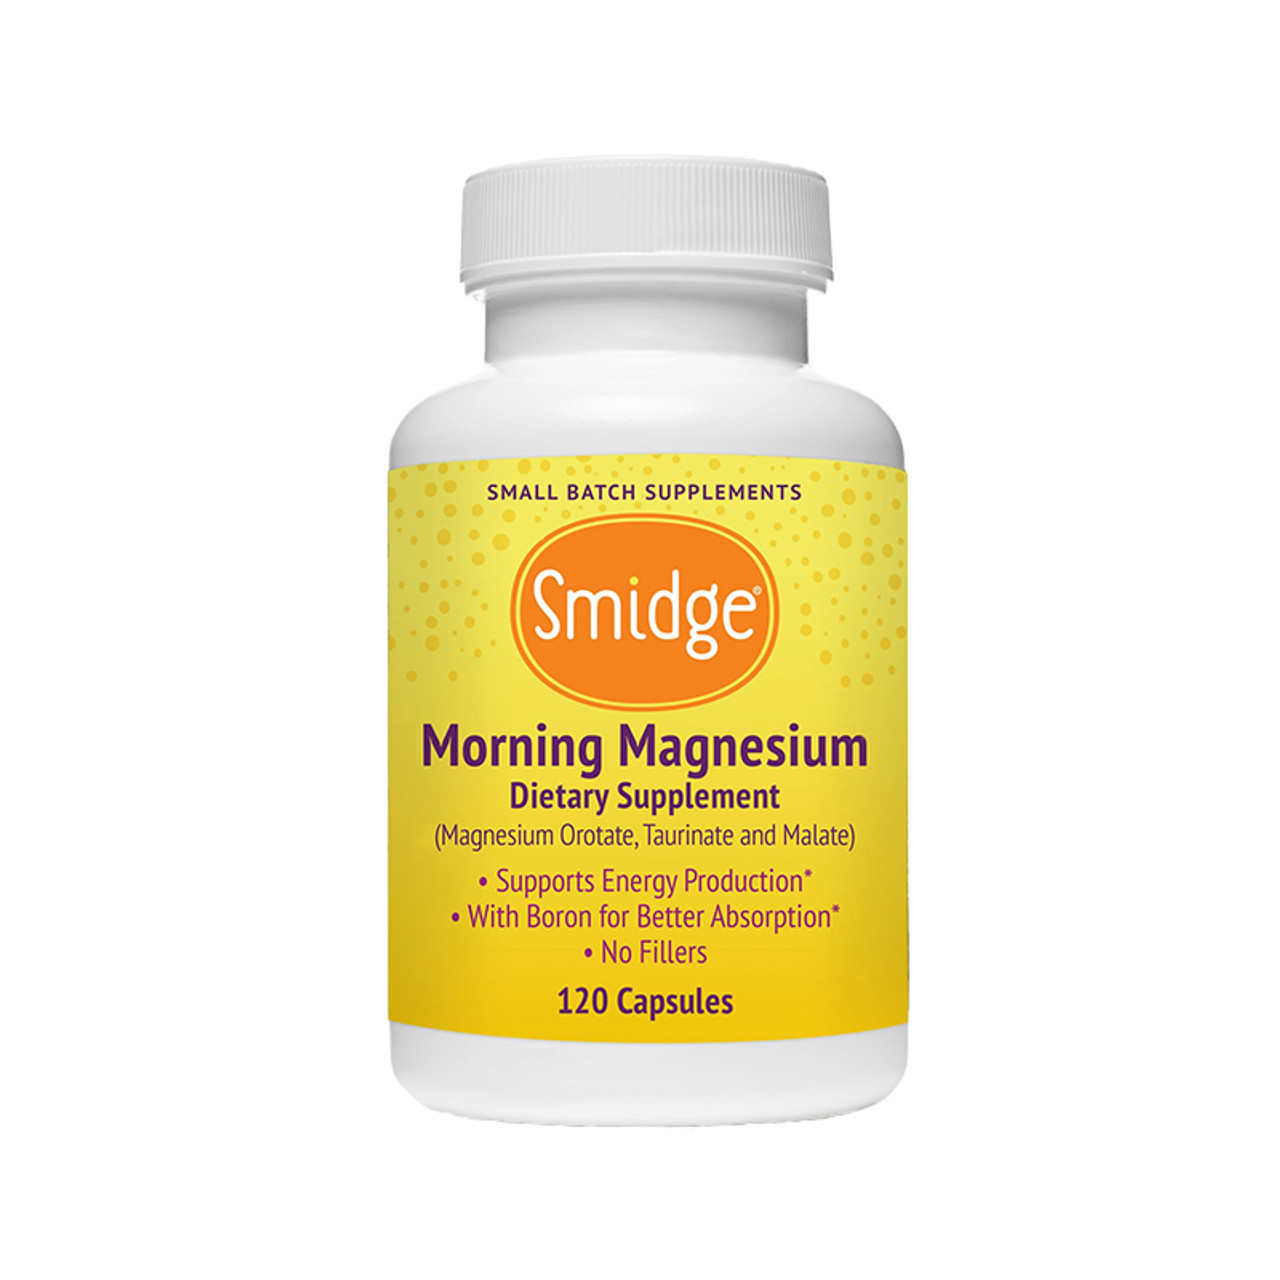 Picture of the front of a bottle of Smidge Morning Magnesium, previously Wake Up Maggie from Organic3.